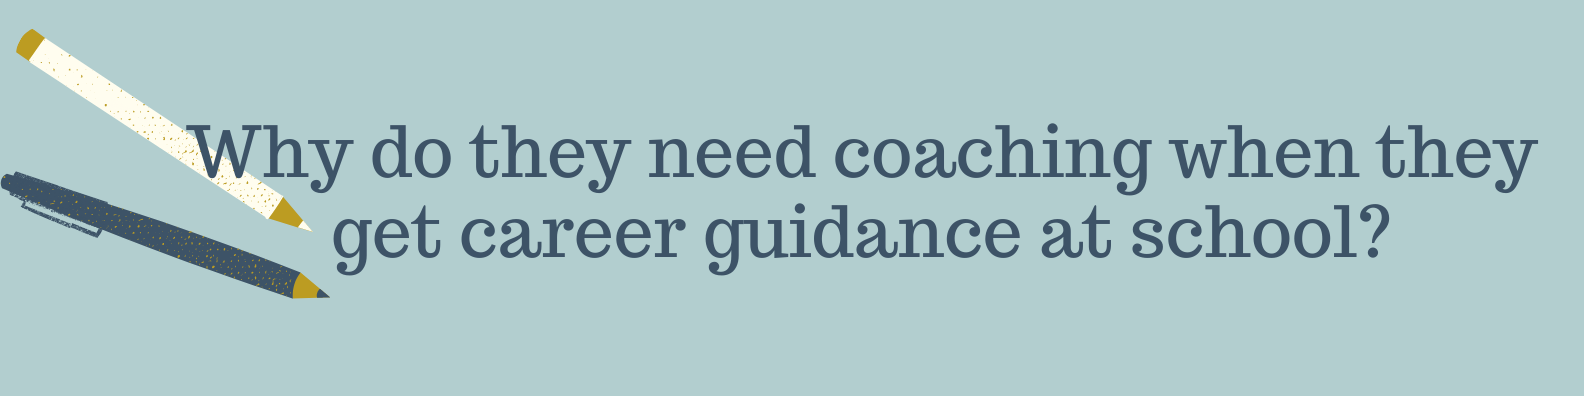 Why coaching when guidance at schoolpng